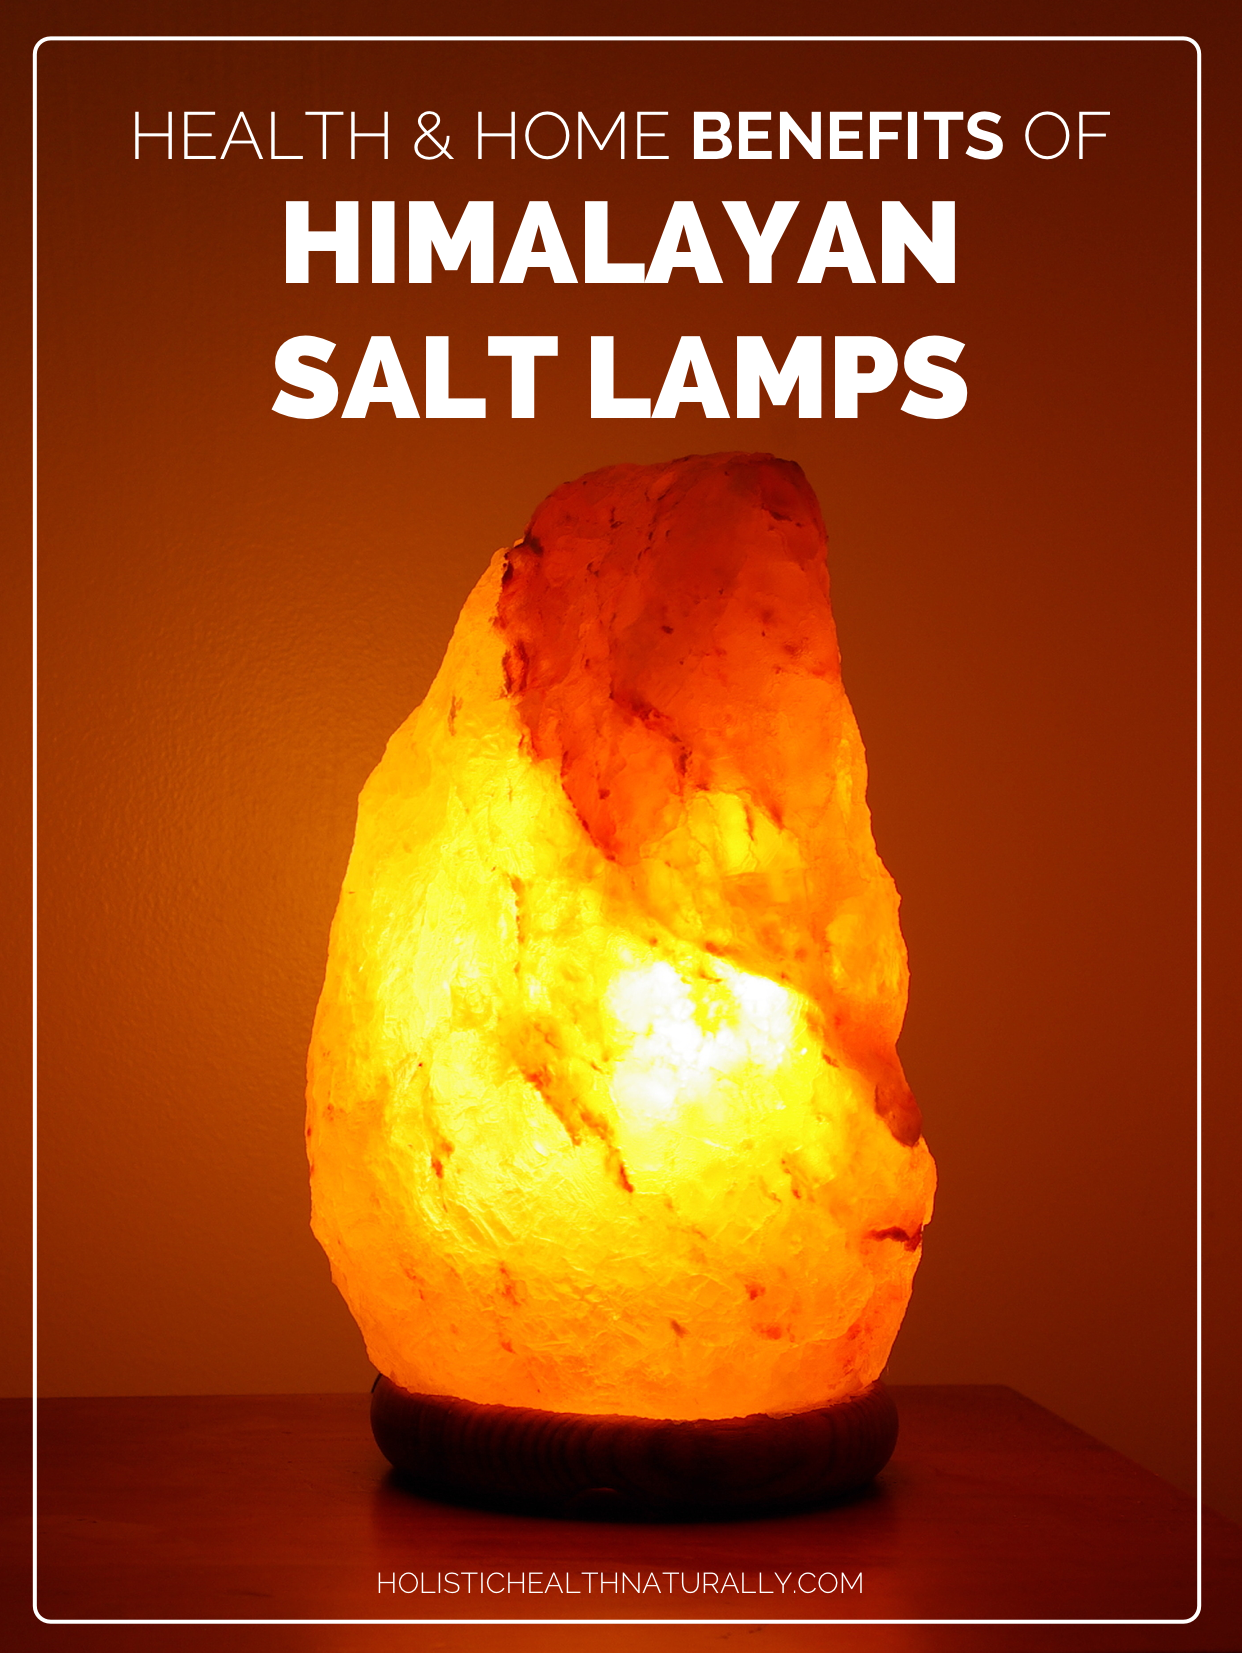 Real Salt Lamp Beauteous Health & Home Benefits Of Himalayan Salt Lamps 2018